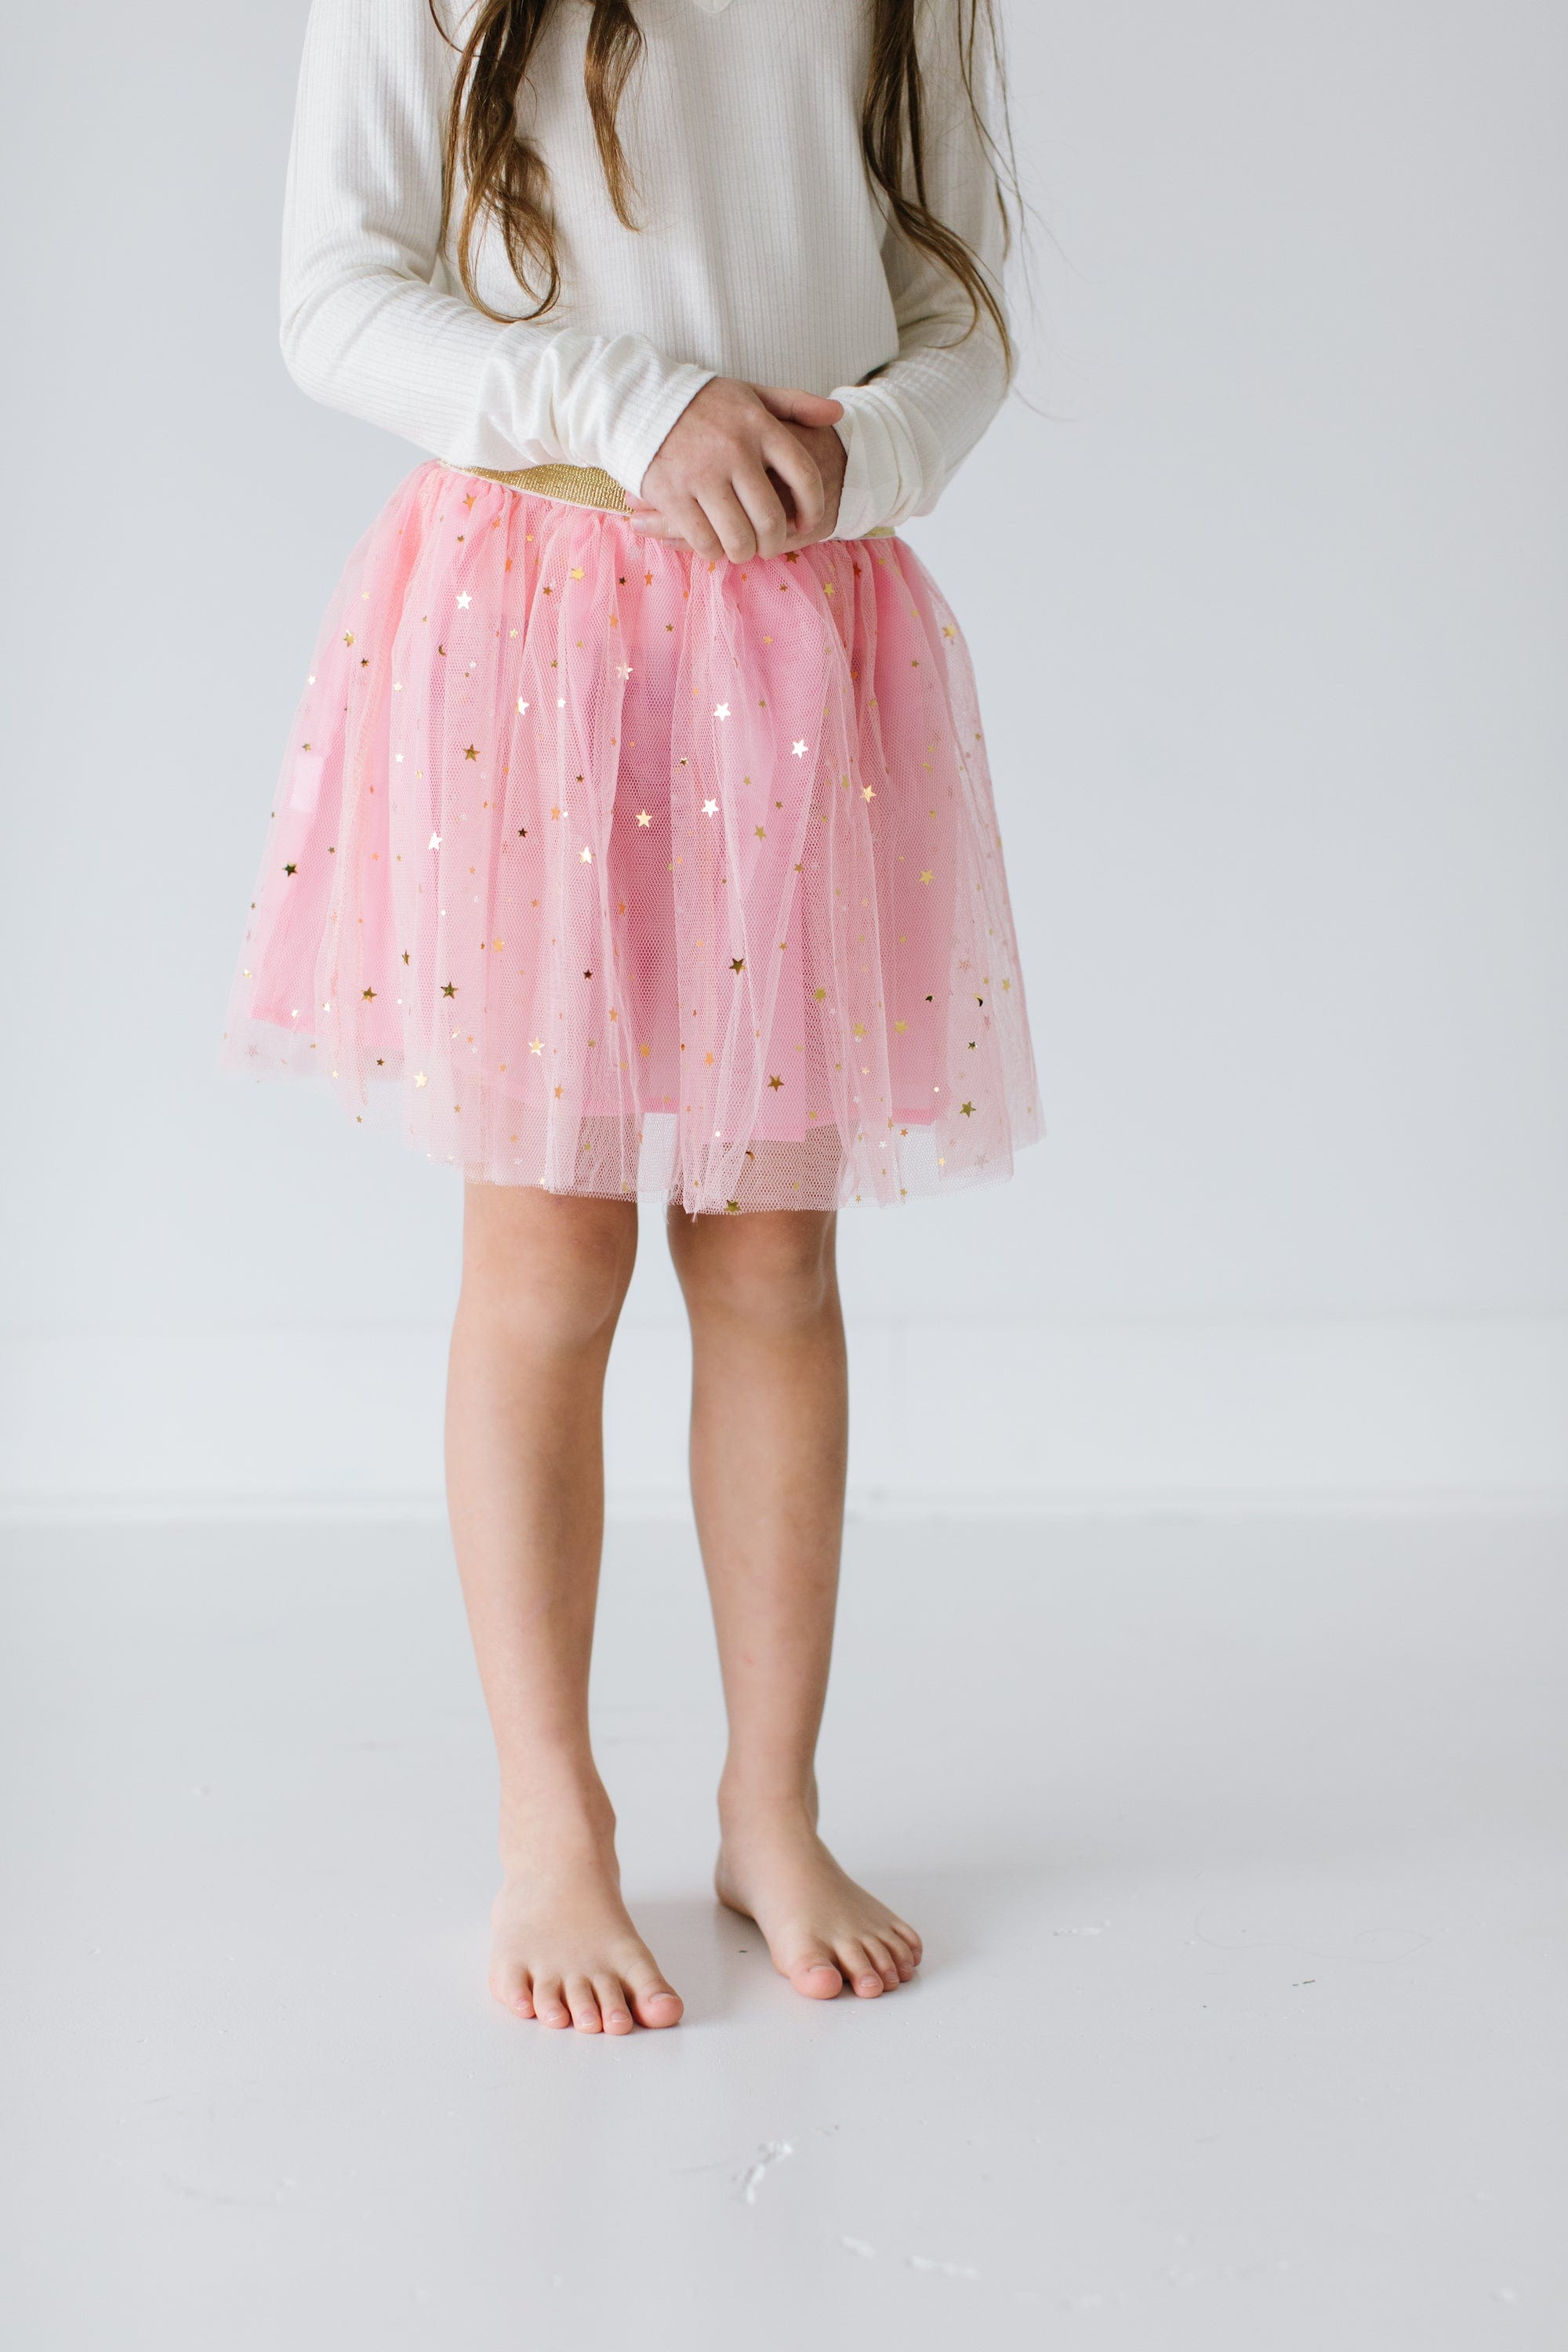 pink tutu with stars for children by tutu joli